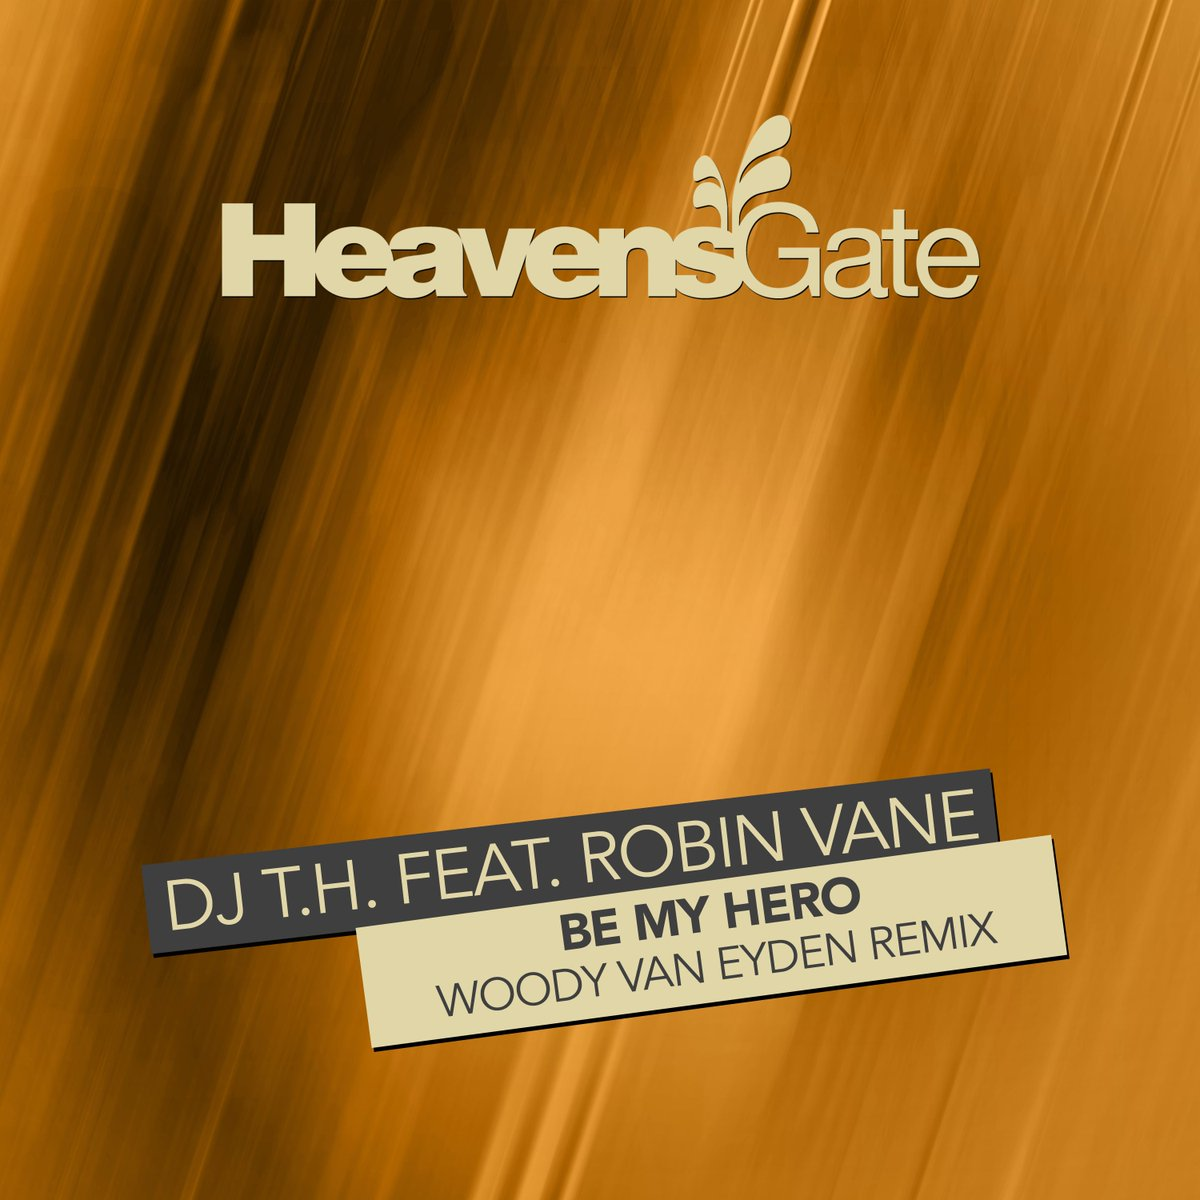 "Next on the way that massive new remix by @WoodyVanEyden for the very first @HeavensGatecouk label release, my tune with @robinvanemusic ""Be My Hero"" which won the @asot Future Favorite :-) https://t.co/jxsOxtkjdN"